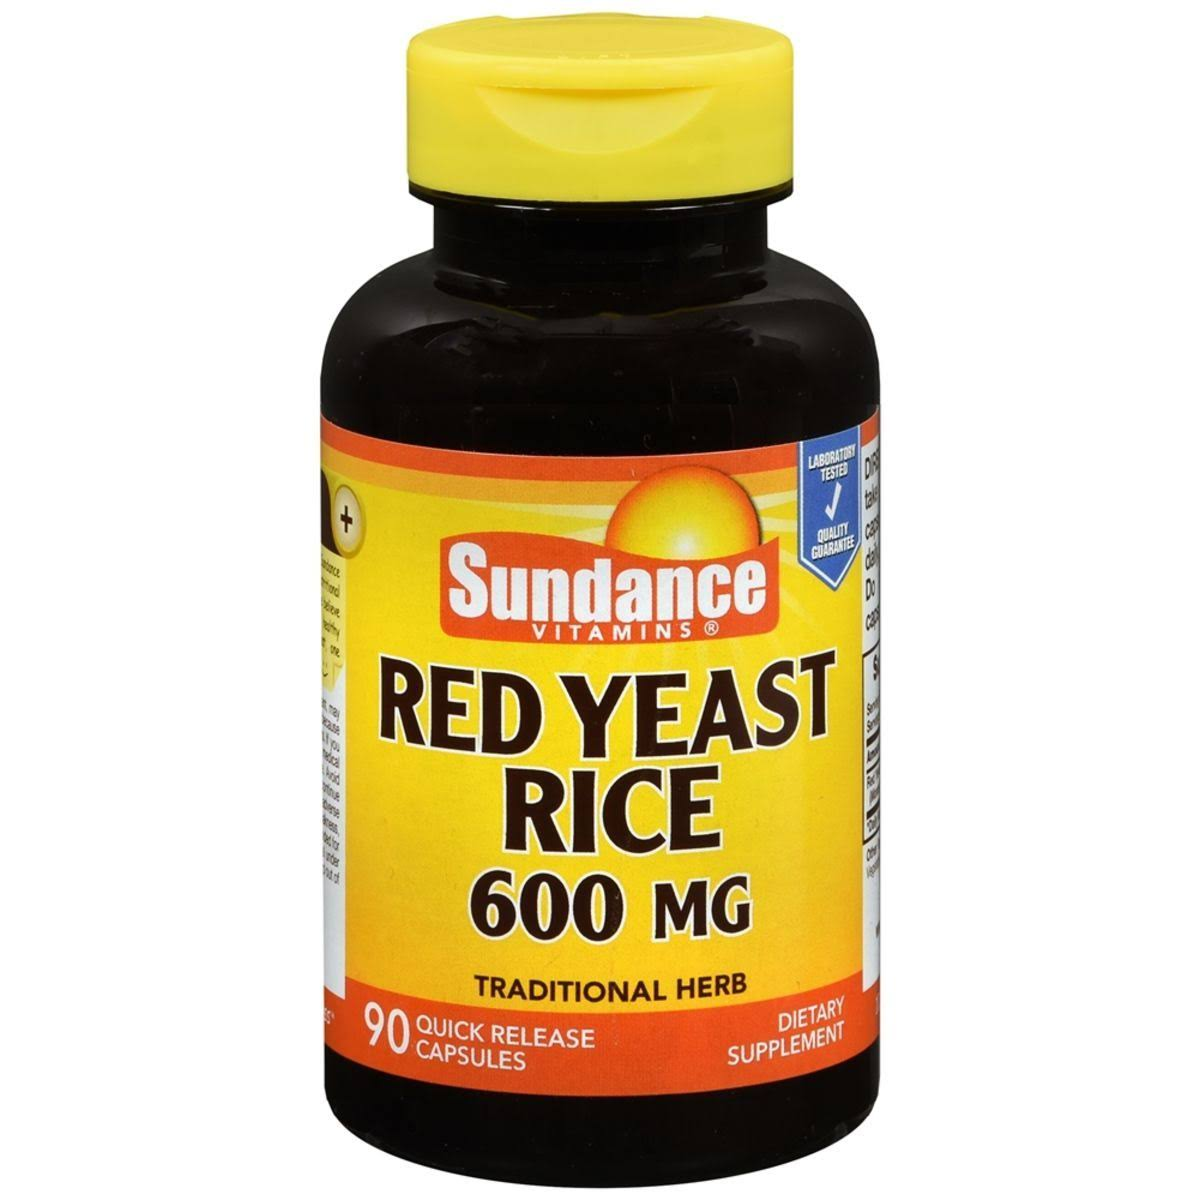 Sundance Red Yeast Rice Supplement - 90ct